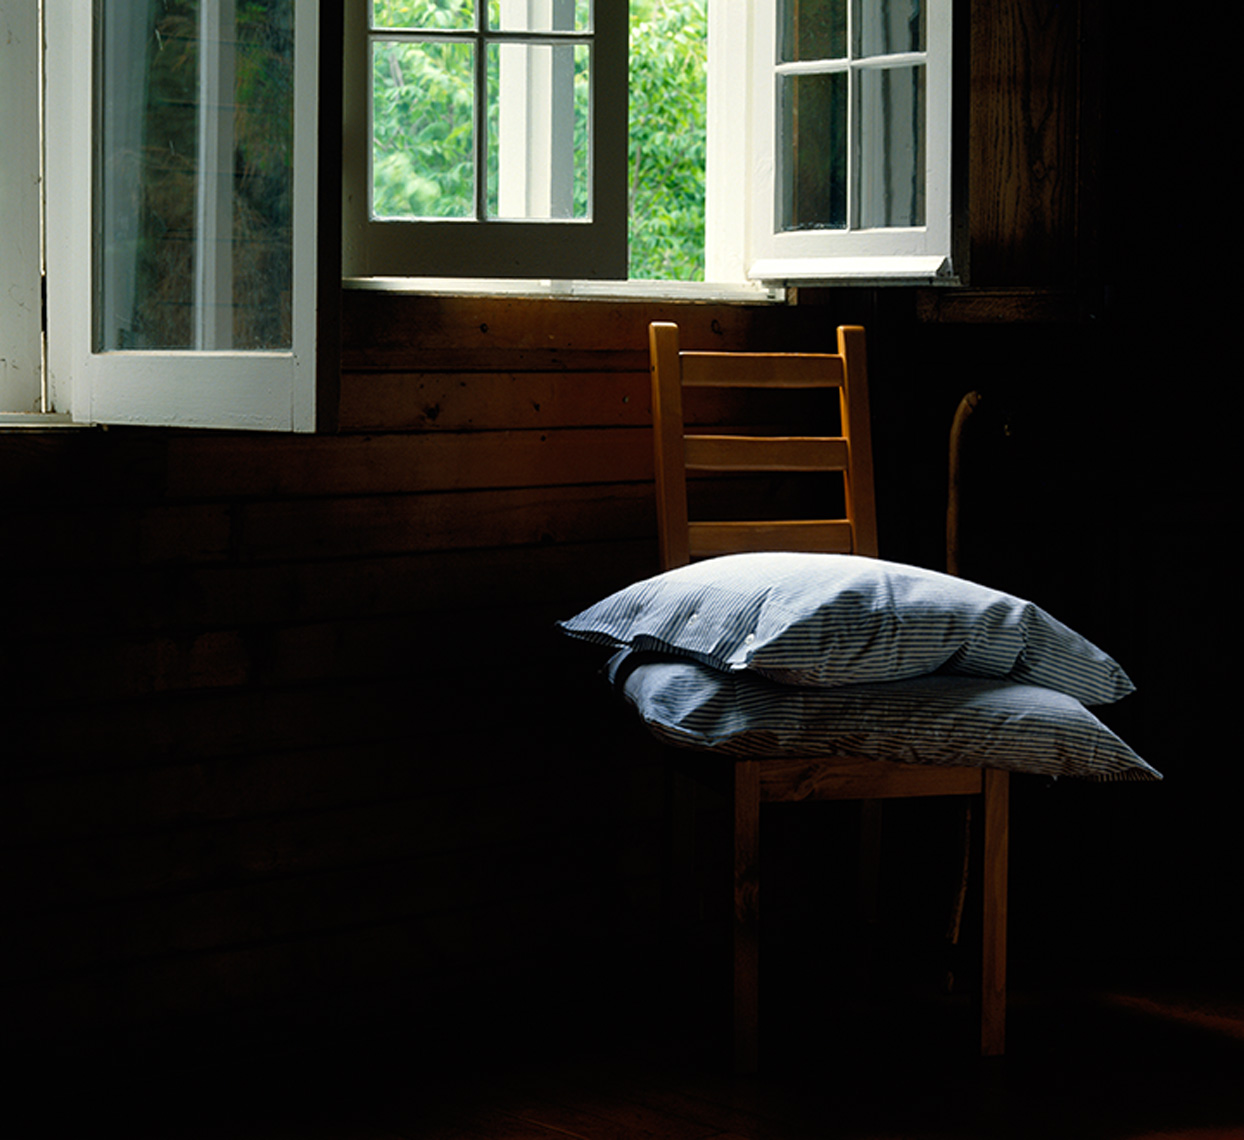 pillows on wooden  chair by window